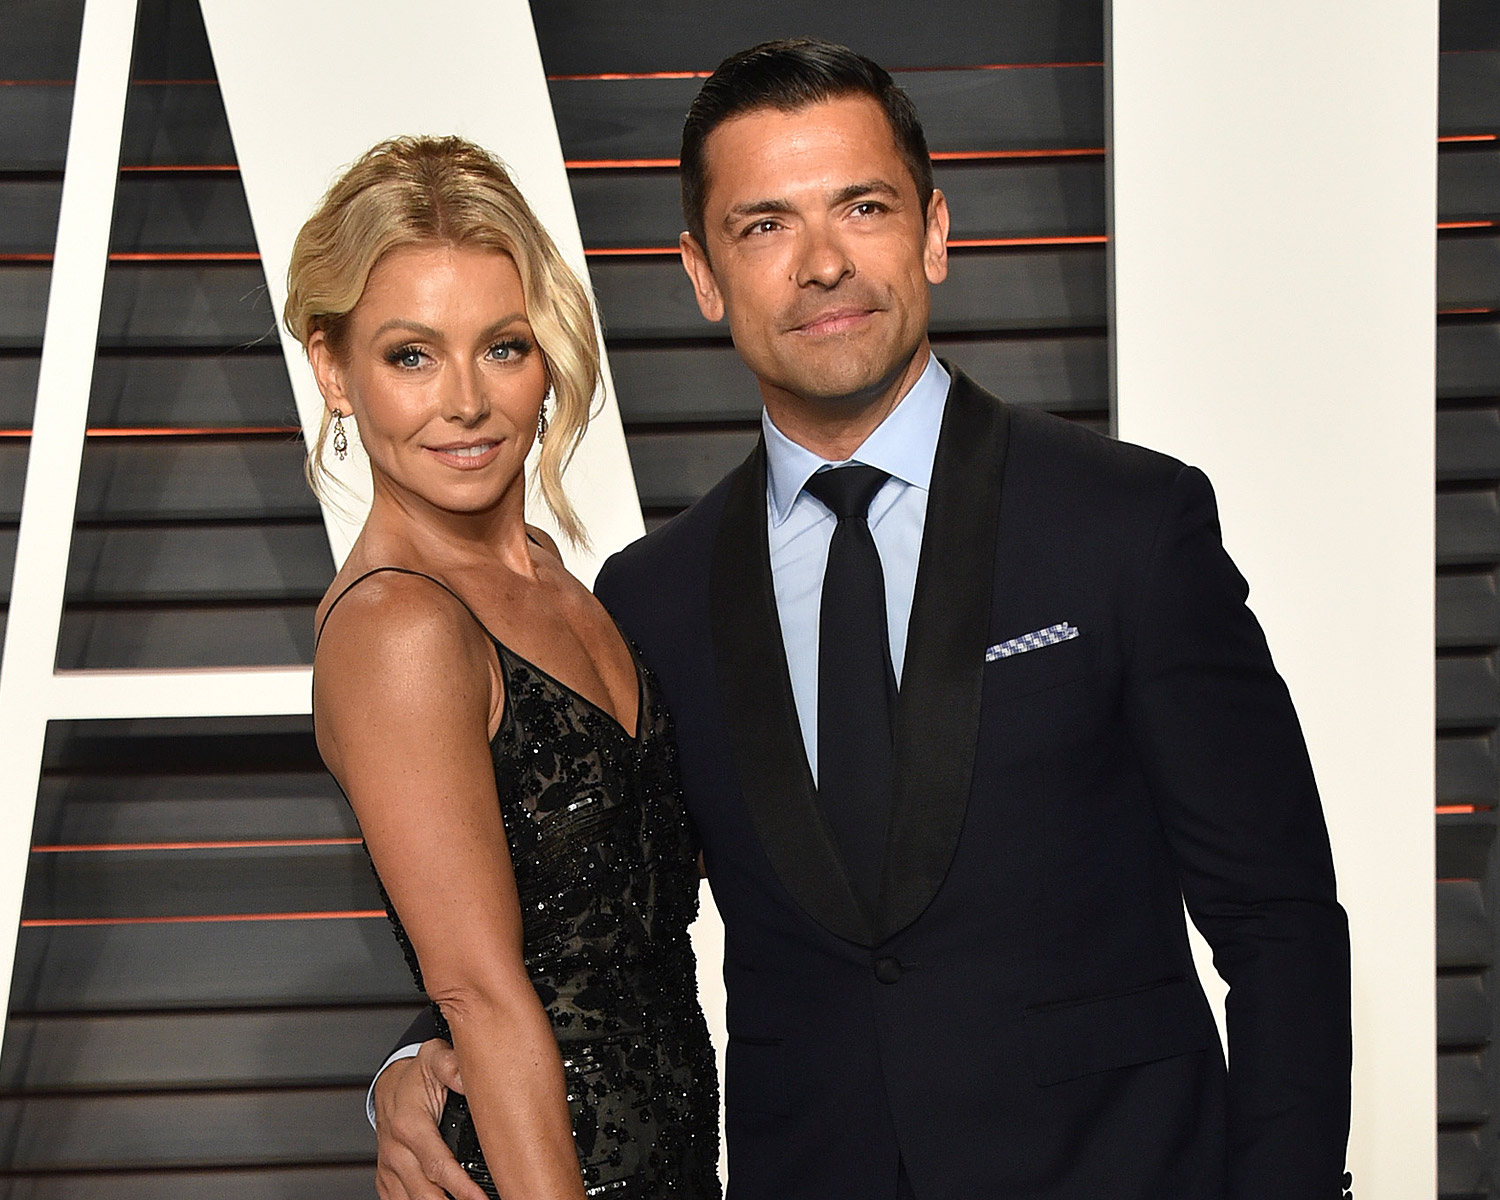 mark consuelos parentsmark consuelos instagram, mark consuelos height weight, mark consuelos, mark consuelos net worth, mark consuelos and kelly ripa, mark consuelos height, mark consuelos family, mark consuelos twitter, mark consuelos parents, mark consuelos american horror story, mark consuelos surgery, mark consuelos movies and tv shows, mark consuelos salary, mark consuelos shirtless, mark consuelos gay, mark consuelos imdb, mark consuelos kingdom, mark consuelos worth, mark consuelos siblings